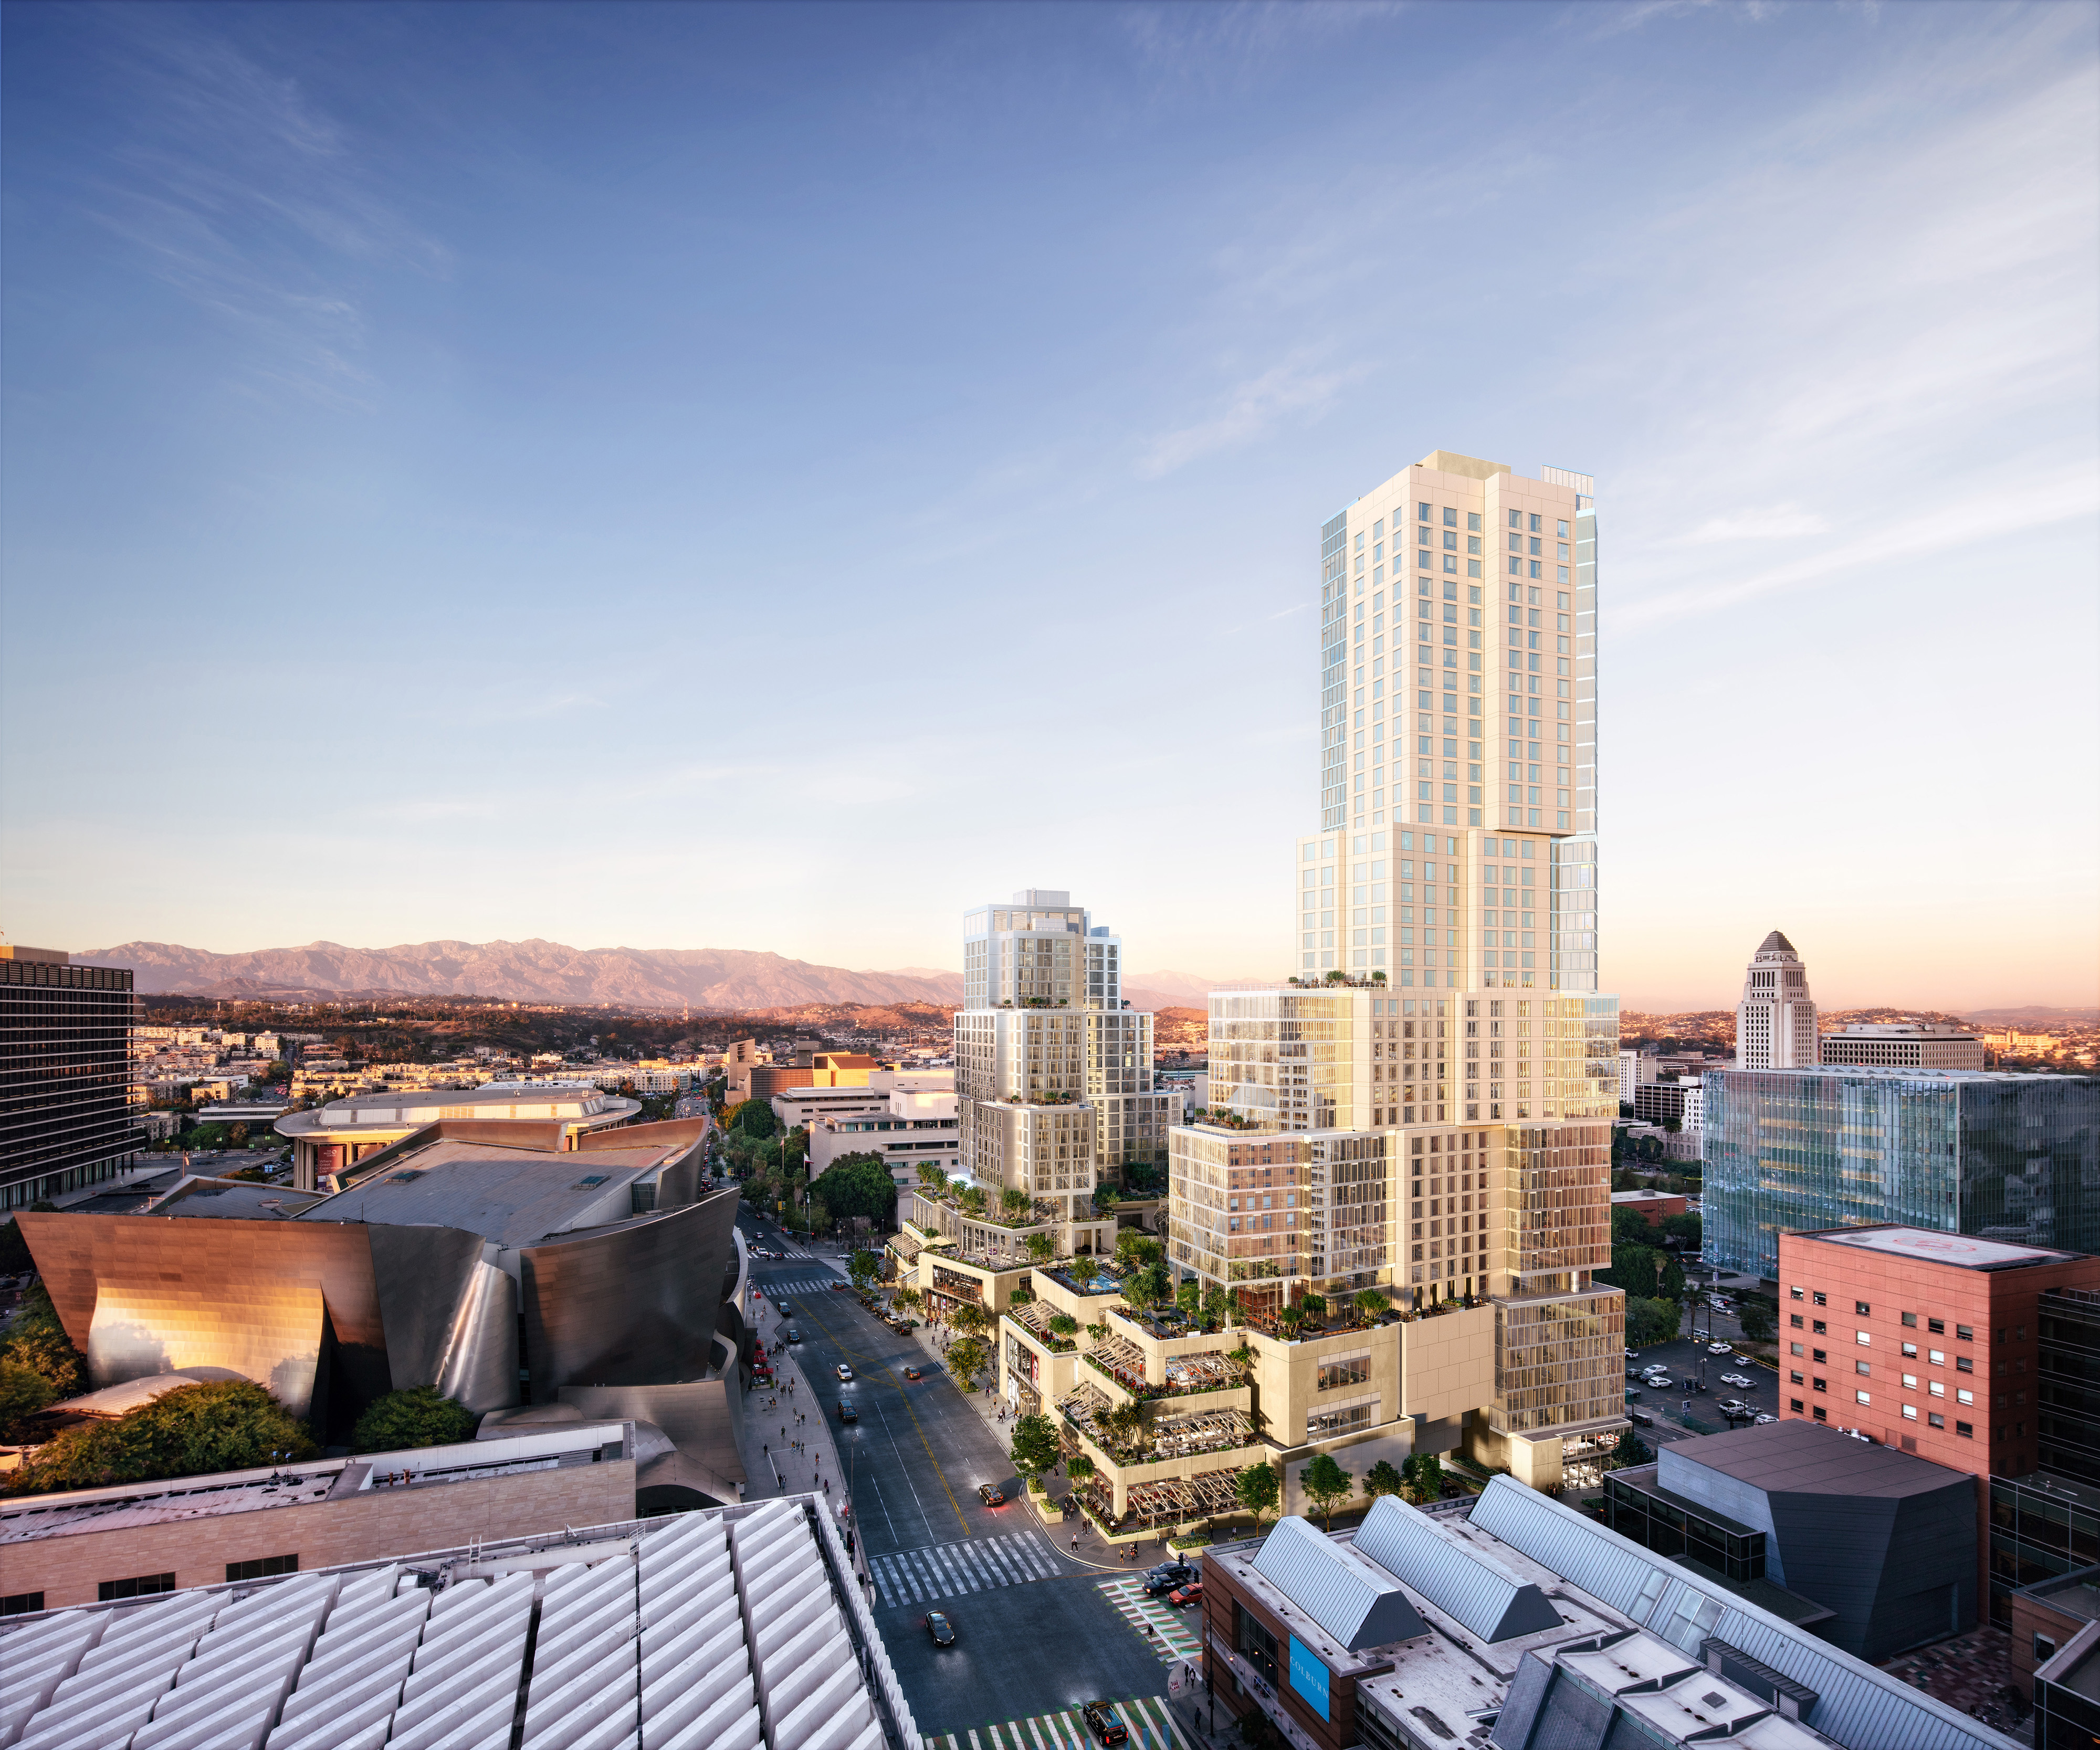 Construction kicks off on Frank Gehry's next big project—a mixed-use complex on Bunker Hill